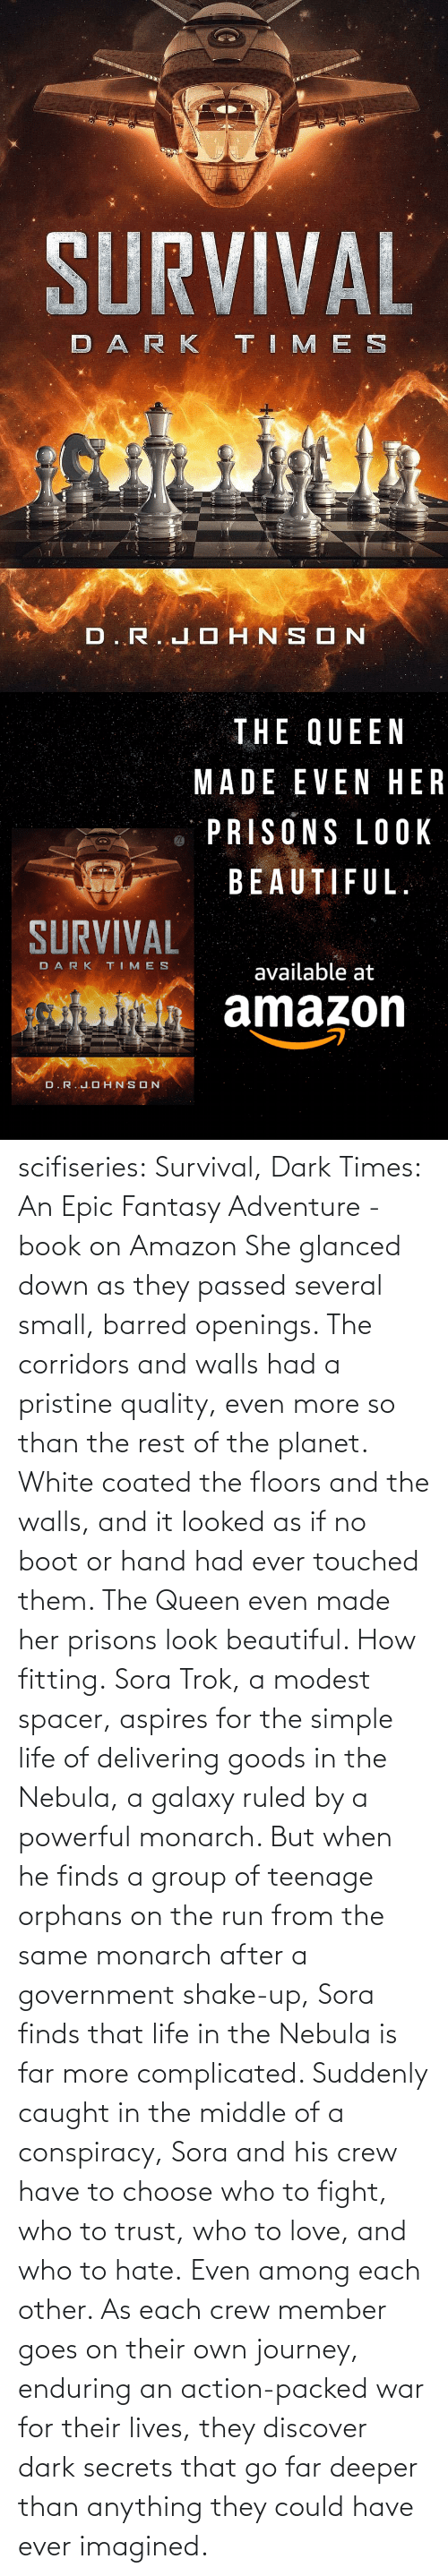 When He: scifiseries: Survival, Dark Times: An Epic Fantasy Adventure - book on Amazon  She glanced down as they  passed several small, barred openings. The corridors and walls had a  pristine quality, even more so than the rest of the planet. White coated  the floors and the walls, and it looked as if no boot or hand had ever  touched them.  The Queen even made her prisons look beautiful.  How fitting. Sora  Trok, a modest spacer, aspires for the simple life of delivering goods  in the Nebula, a galaxy ruled by a powerful monarch. But when he finds a  group of teenage orphans on the run from the same monarch after a  government shake-up, Sora finds that life in the Nebula is far more complicated.  Suddenly  caught in the middle of a conspiracy, Sora and his crew have to choose  who to fight, who to trust, who to love, and who to hate. Even among each other.  As  each crew member goes on their own journey, enduring an action-packed  war for their lives, they discover dark secrets that go far deeper than  anything they could have ever imagined.